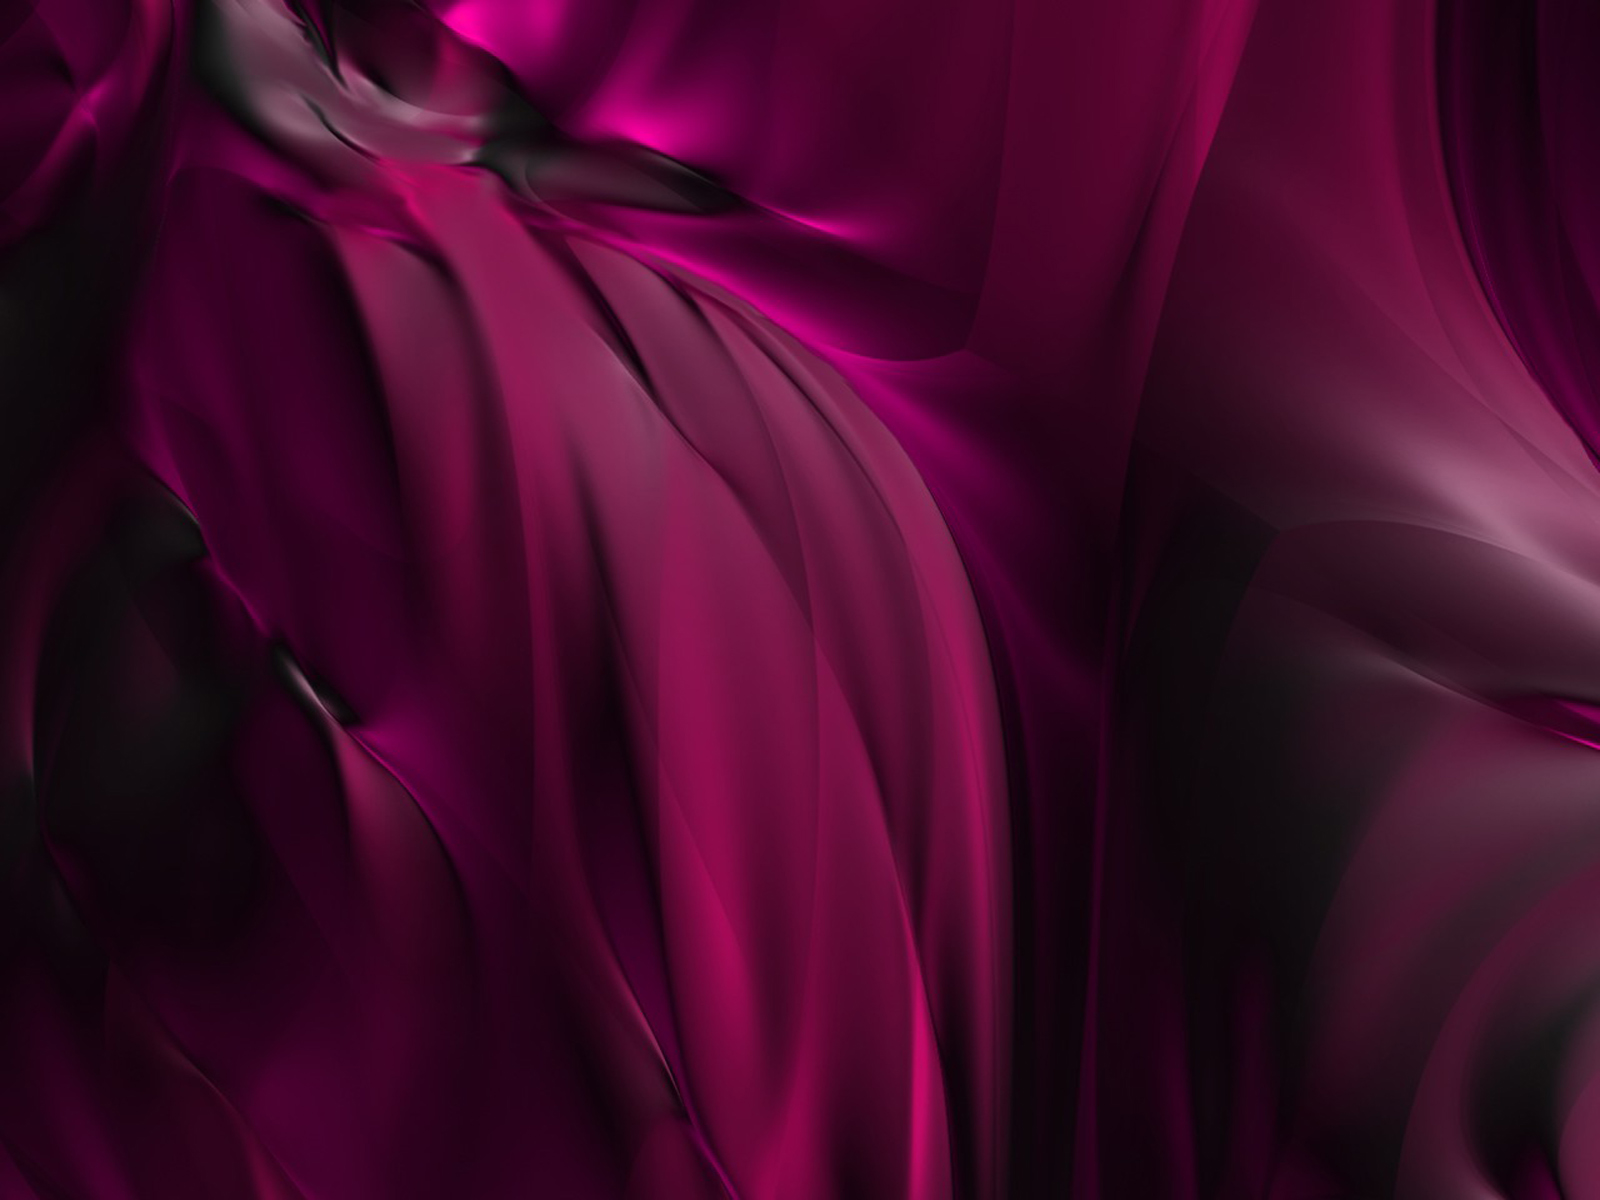 Download Wallpaper Purple black and pink stains   1600x1200 1600x1200